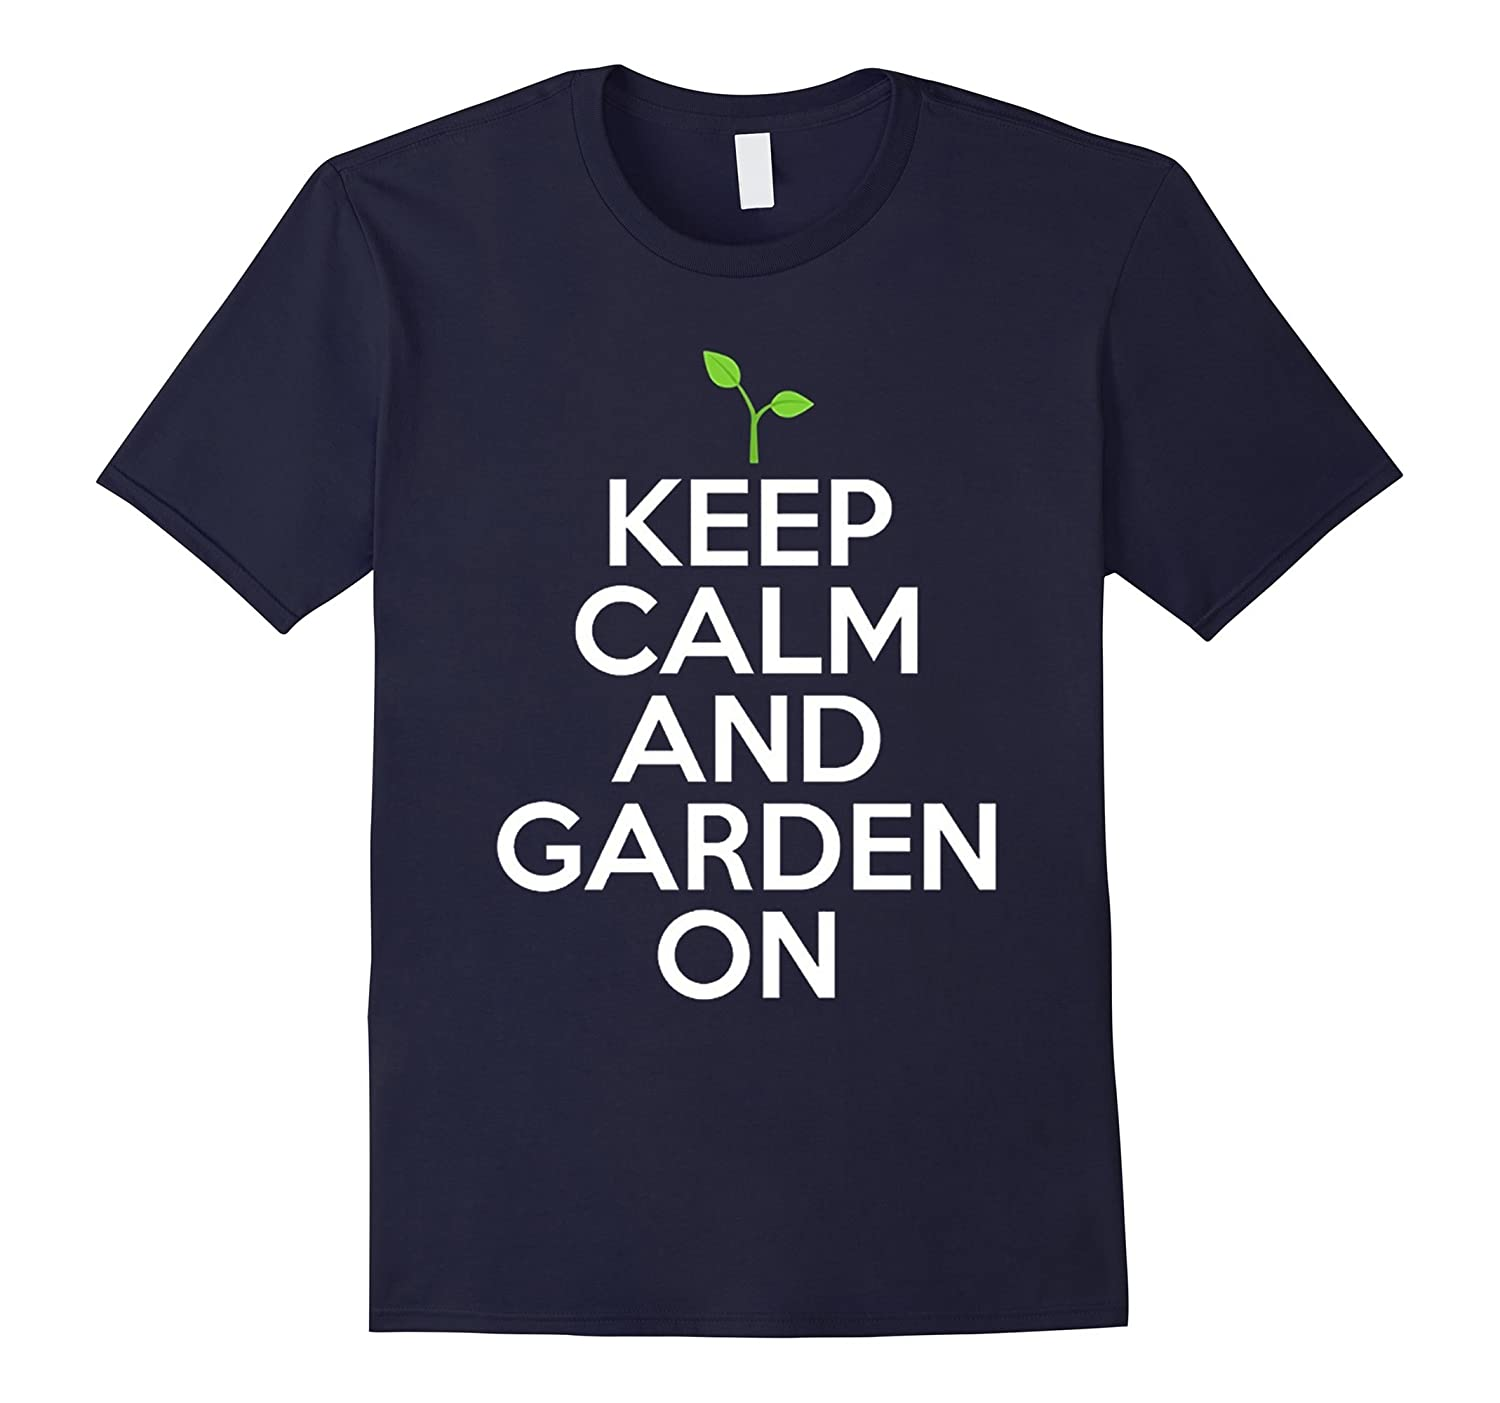 KEEP CALM AND GARDEN ON Gardener Gardening T-shirt Gift-TD